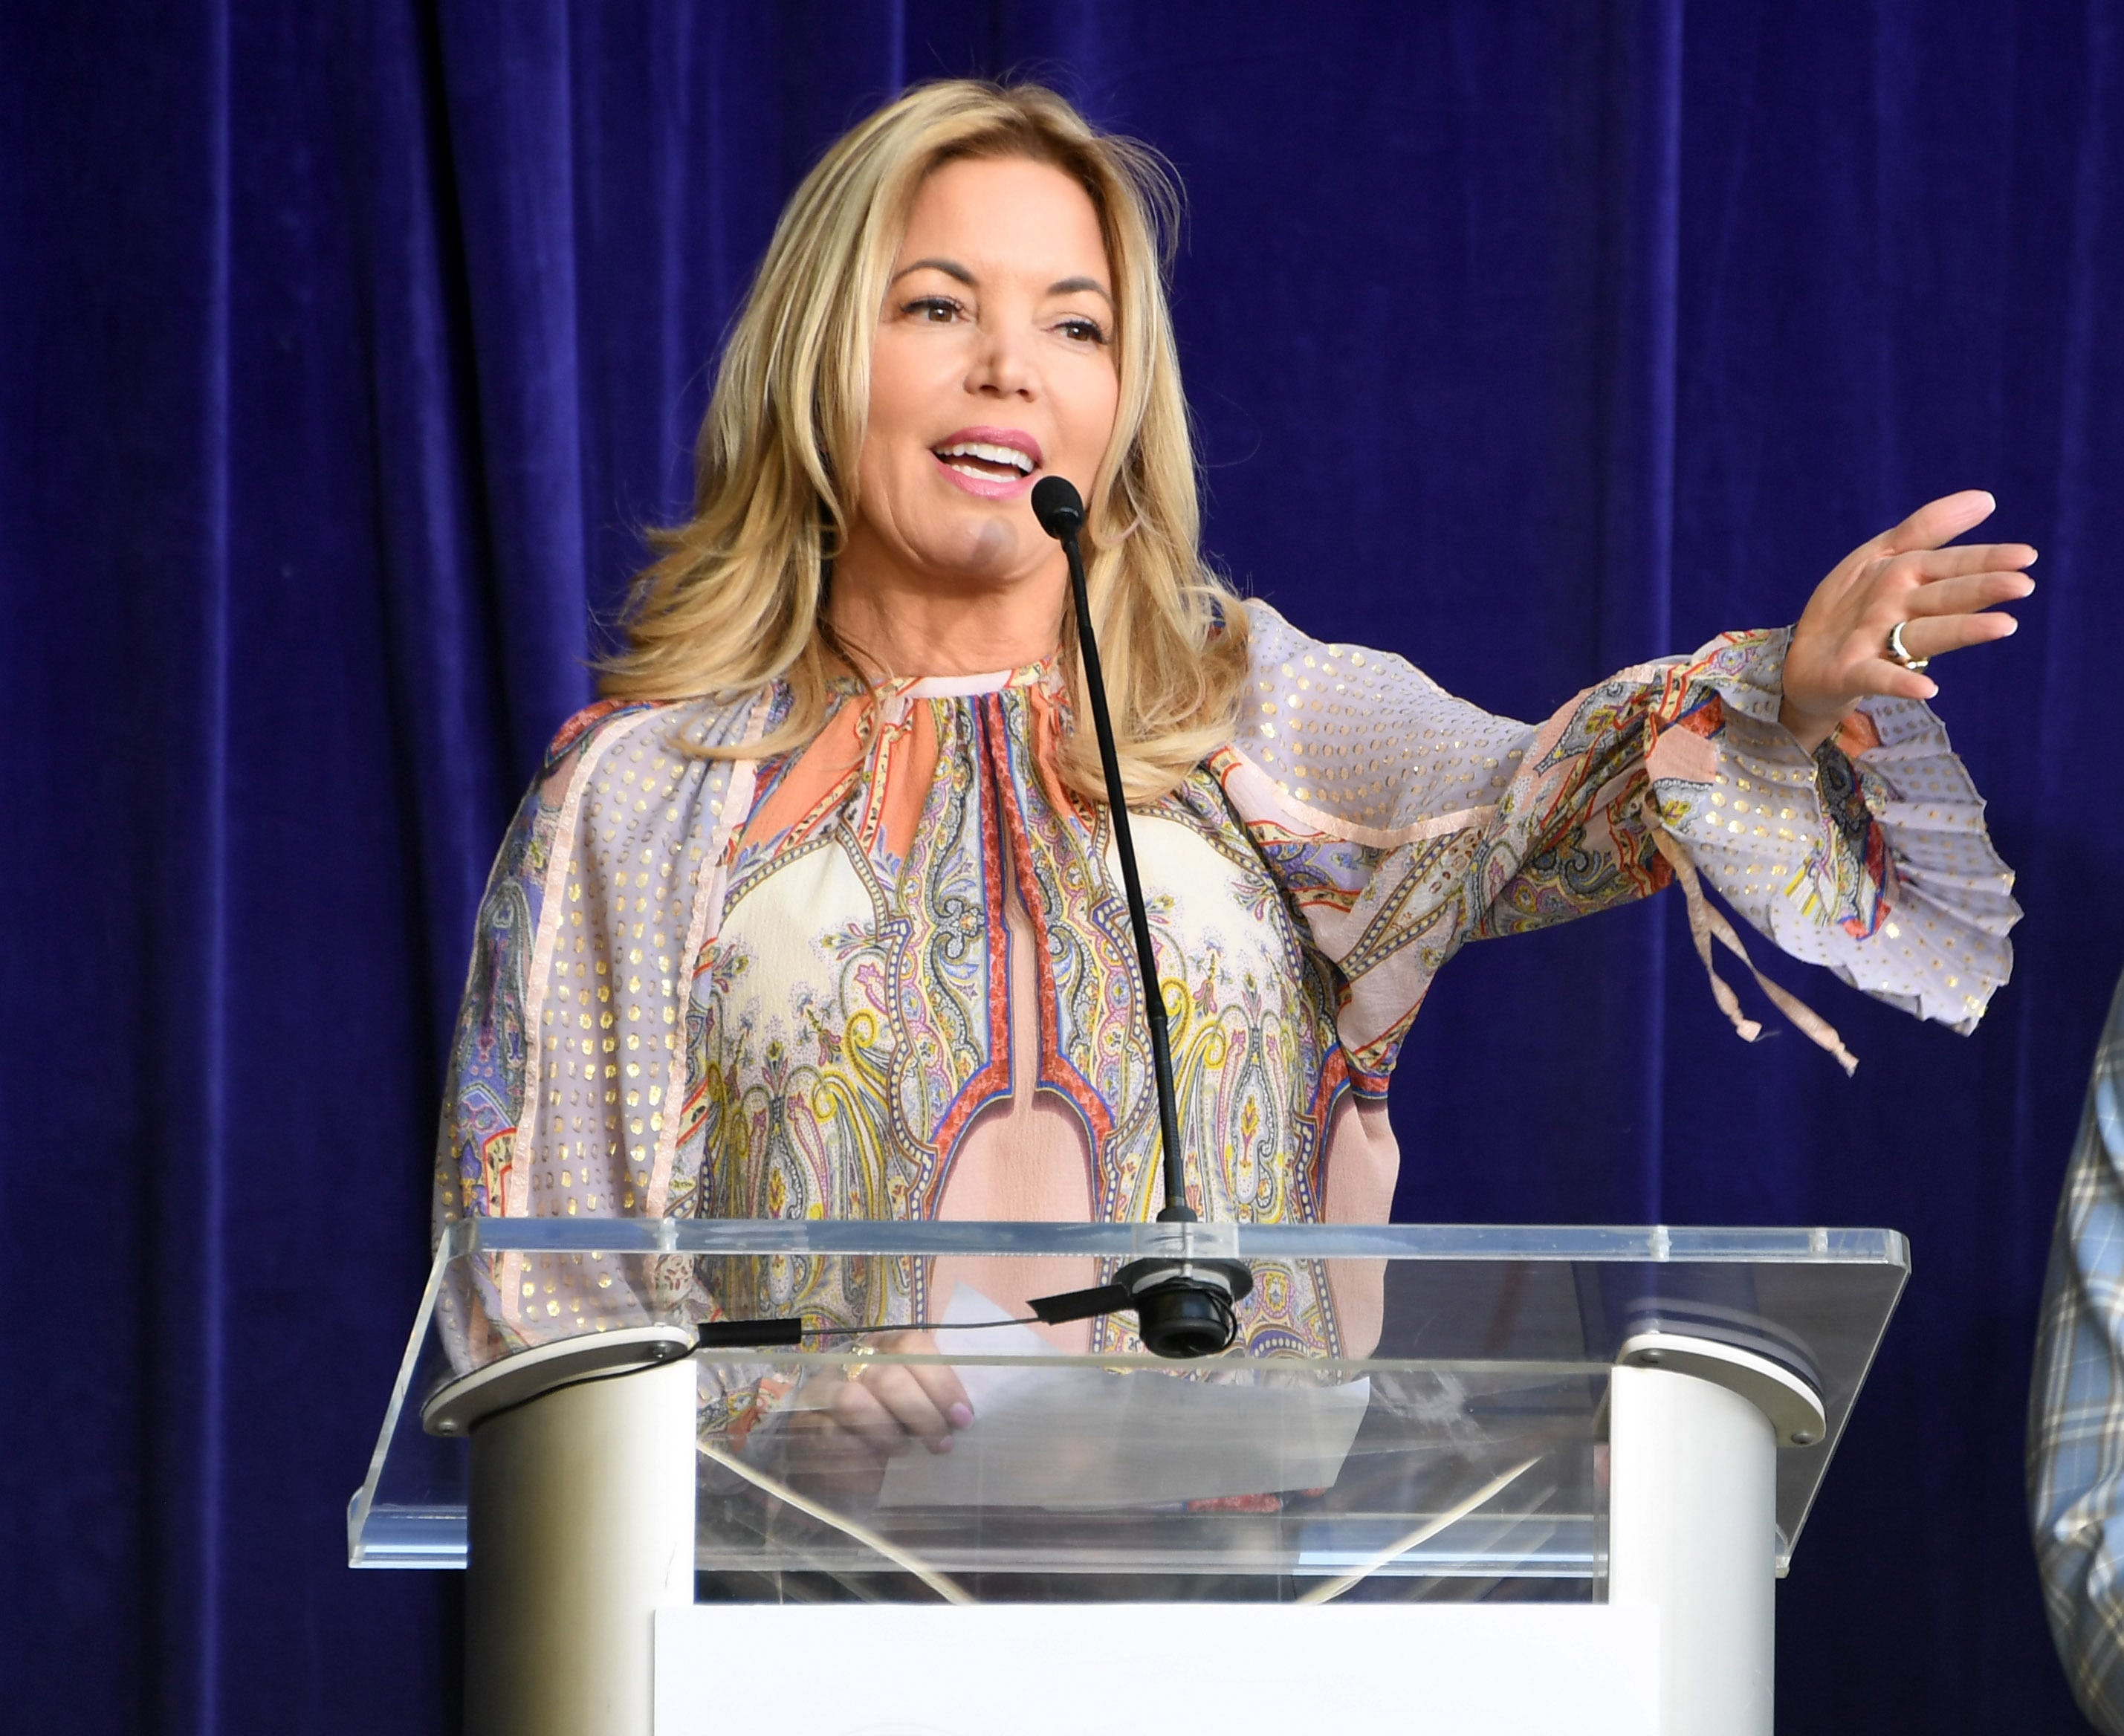 Lakers owner and president Jeanie Buss must decide what the makeup of her front office should be - and which direction it will take.